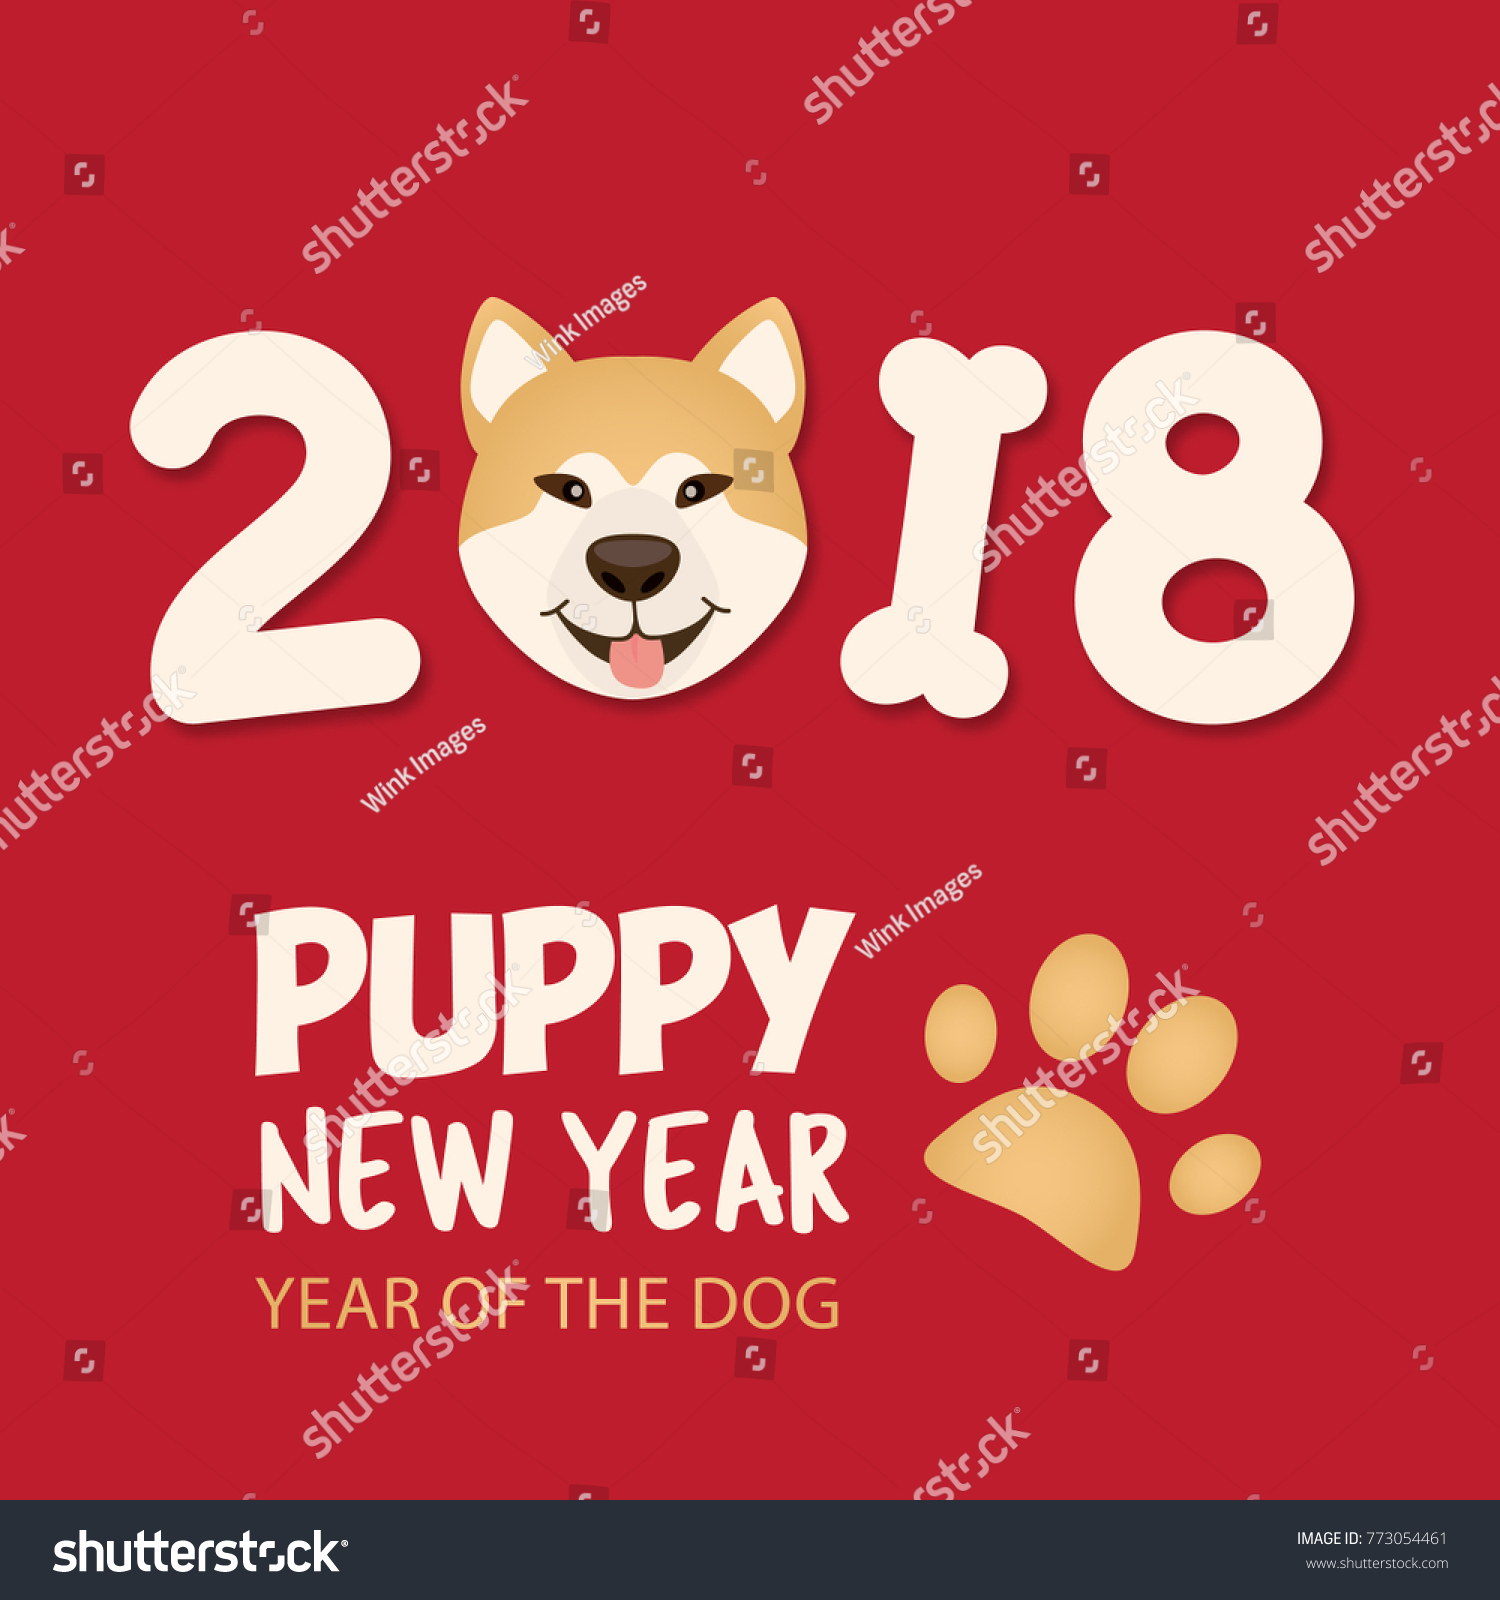 year of the dog 2018 puppy new year chinese happy new year design - Happy New Year Chinese